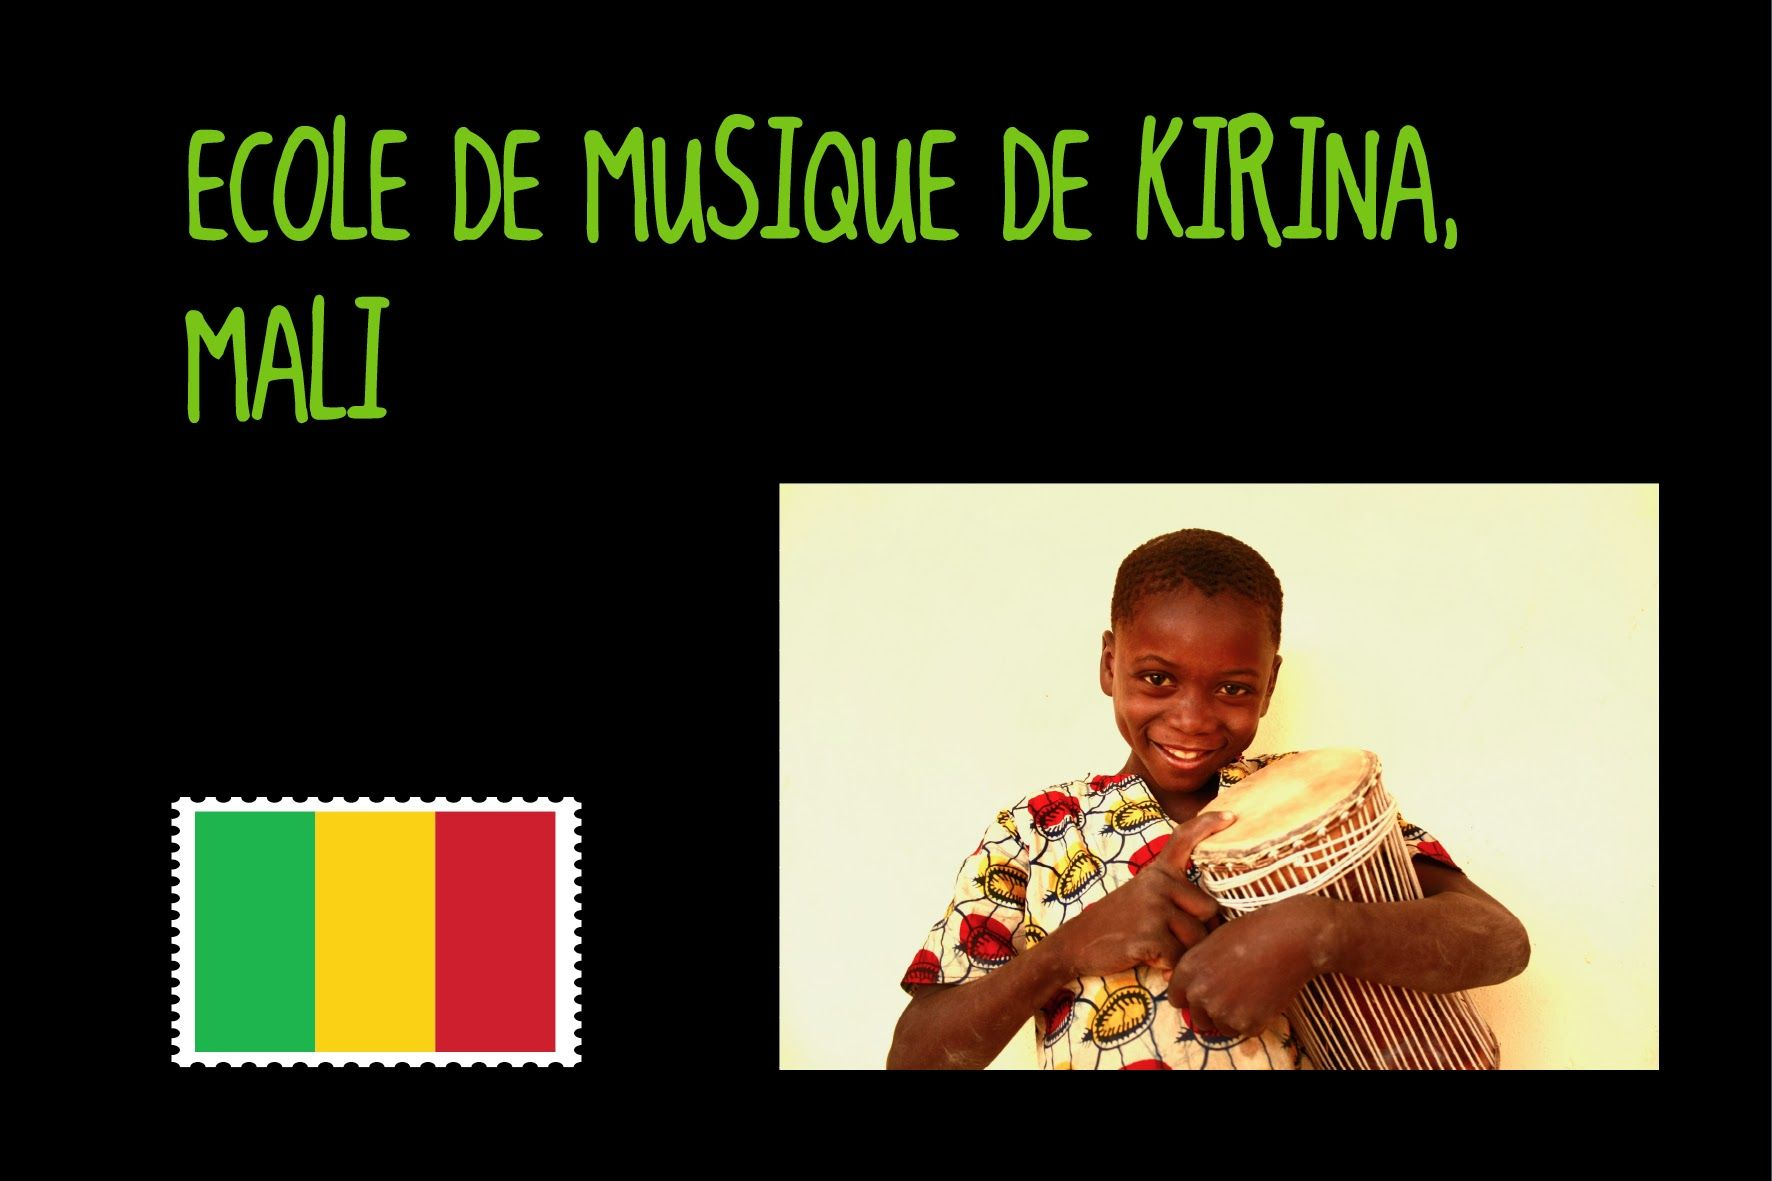 Located 50 kilometers south from Bamako, Kirina preserved a cultural and musical knowledge that goes back to the 13th Century. Built with the active participation of the community, the music school receives since October 2010 more than 200 students per week, who attend classes in #kora, #djembé, #balafon, #dance and #chant. Beyond #music classes, we introduced English and French classes as well as homework support classes.